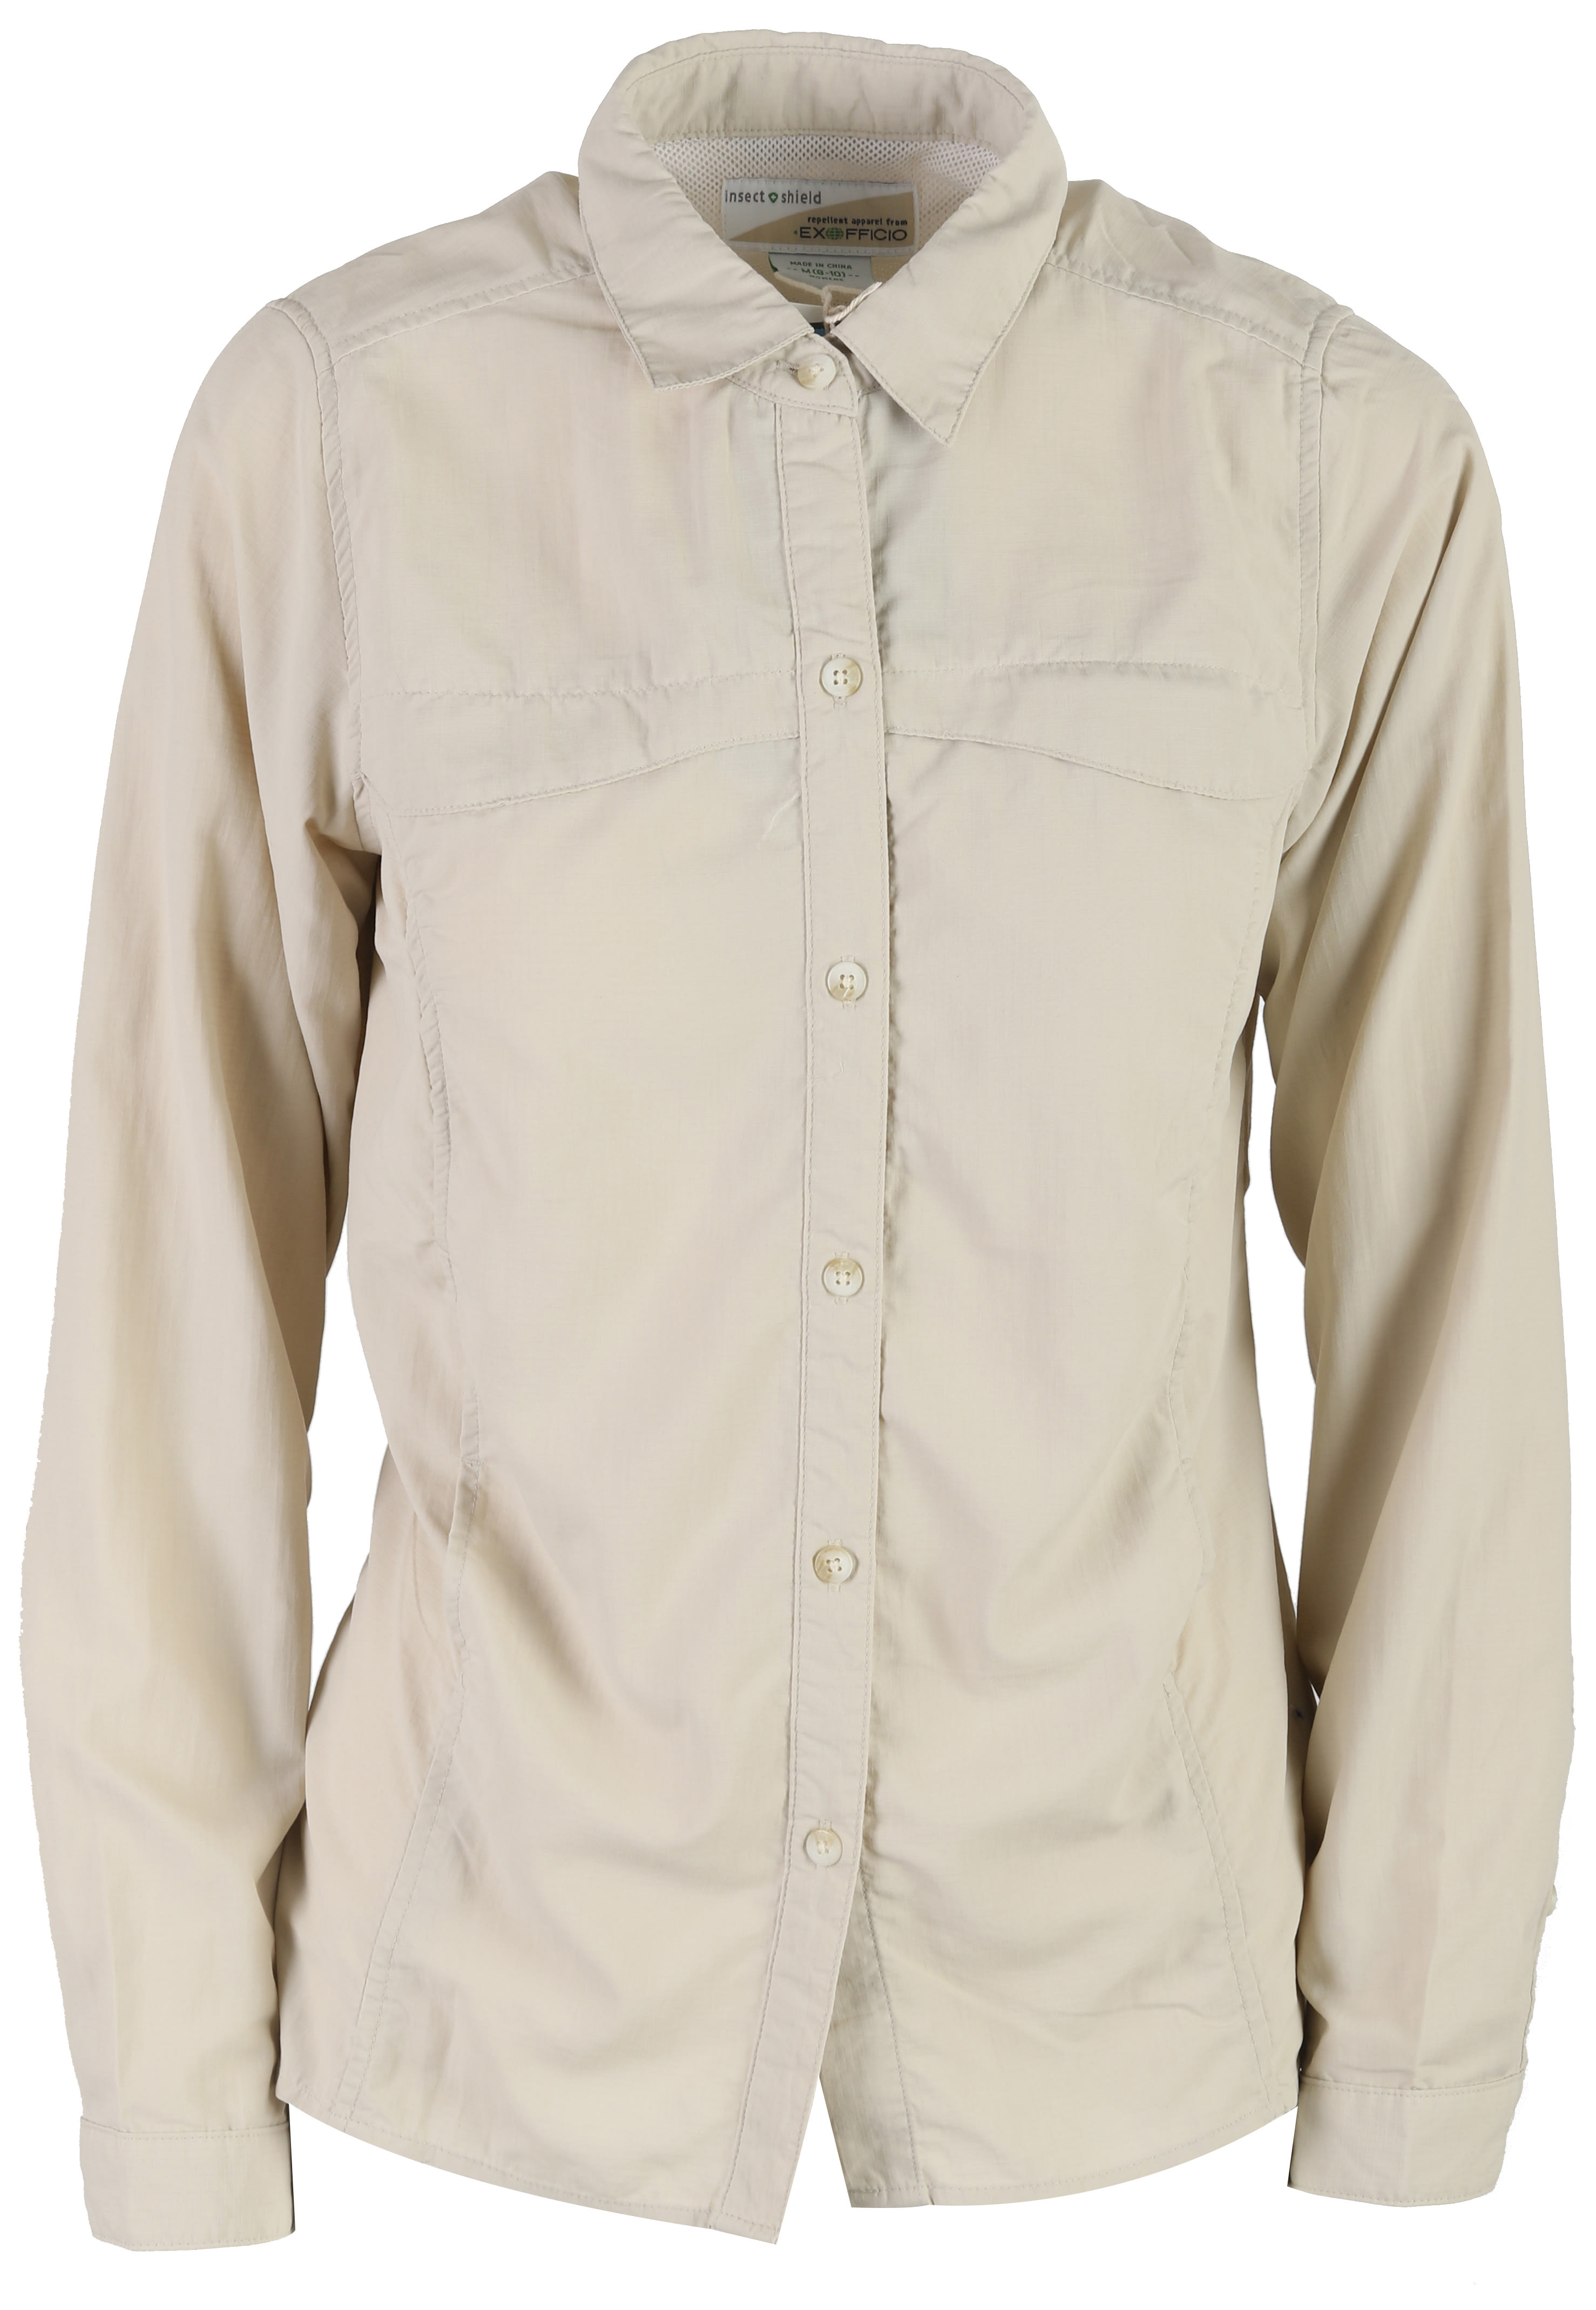 Exofficio BugsAway Breez'r L/S Shirt ef3babw02bo16zz-exofficio-performance-shirts